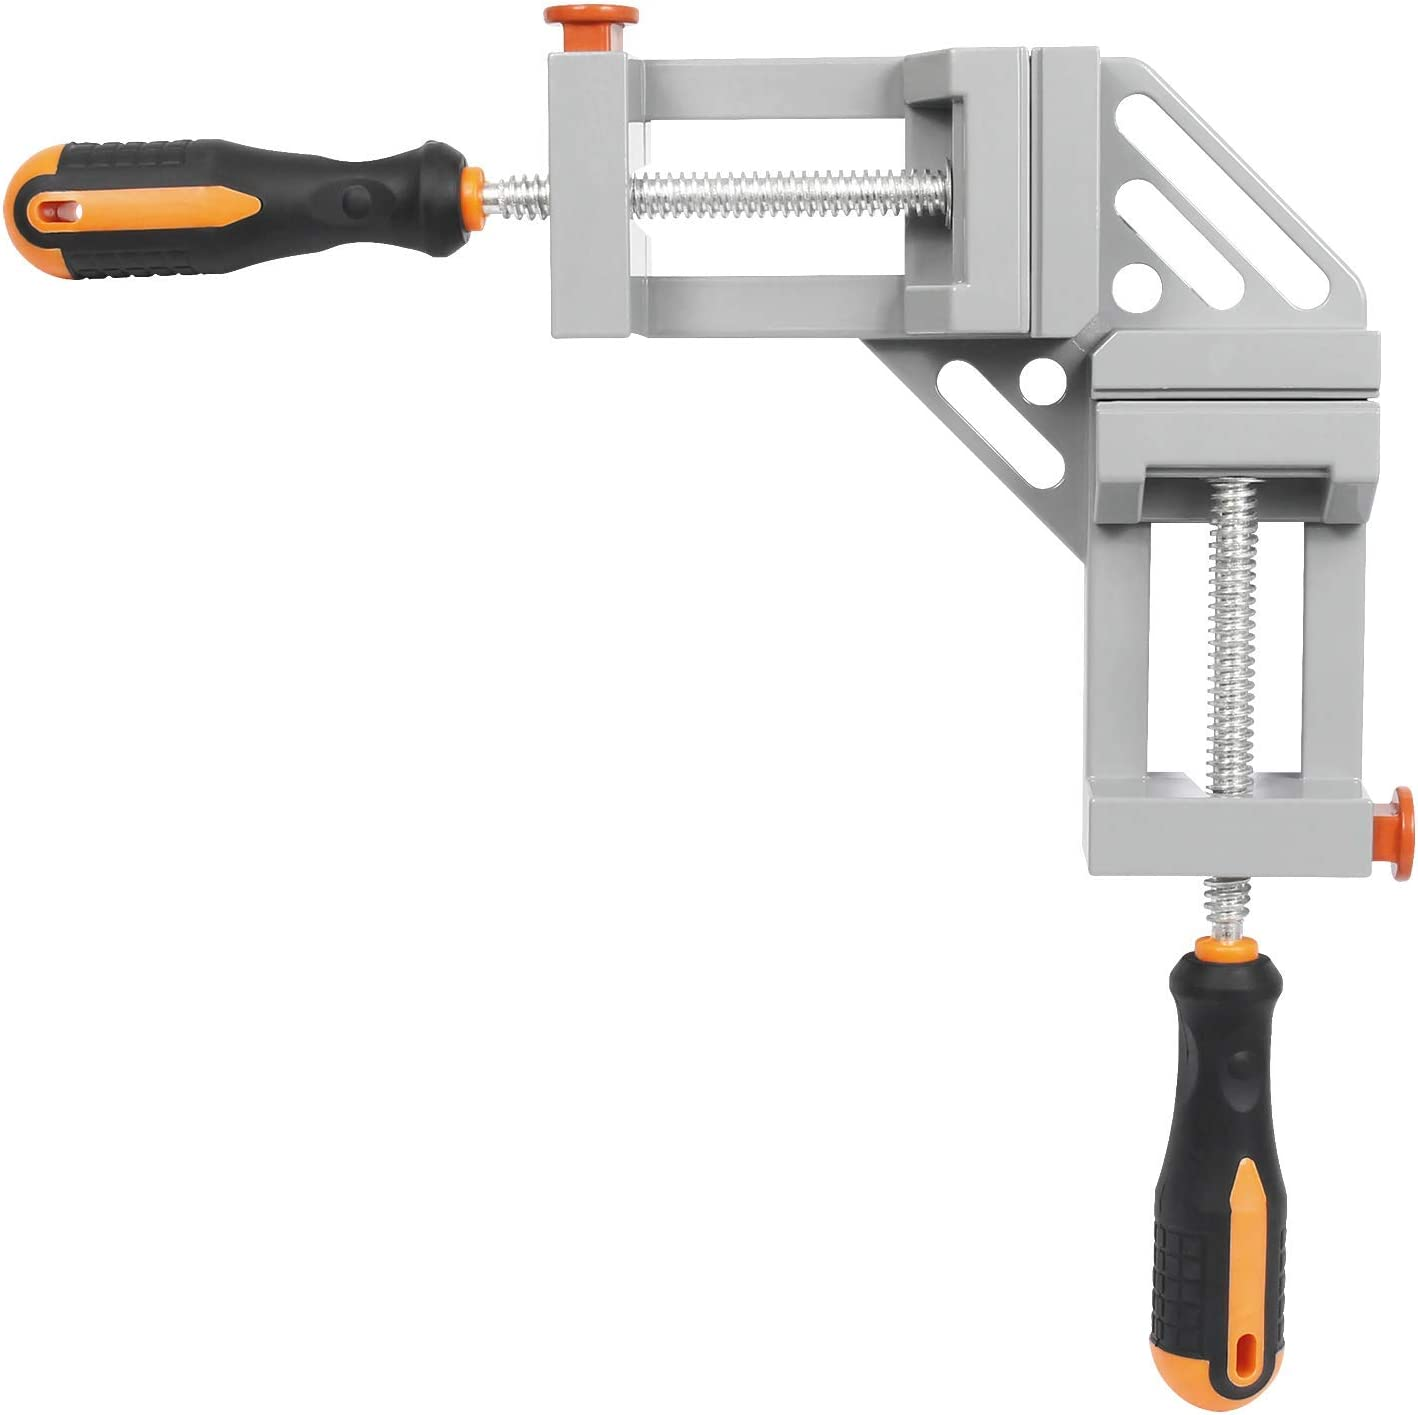 Angle Clamps Clamps gaixample.org Wisamic Right Angle Clamp 90 ...